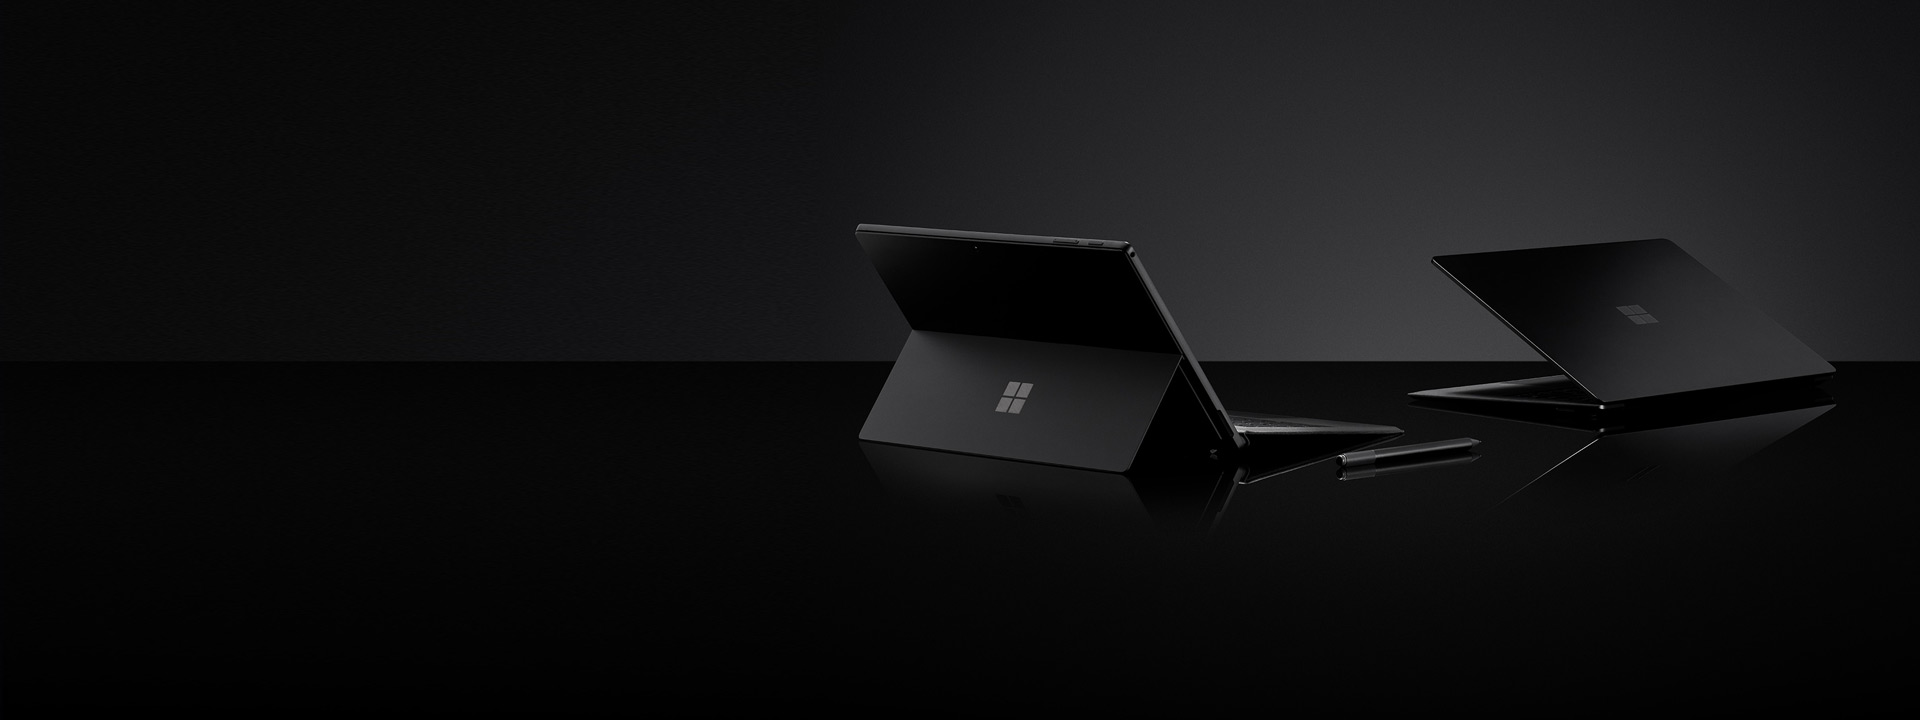 Black Surface Pro 6, Black Surface Laptop 2 and Black Surface Pen